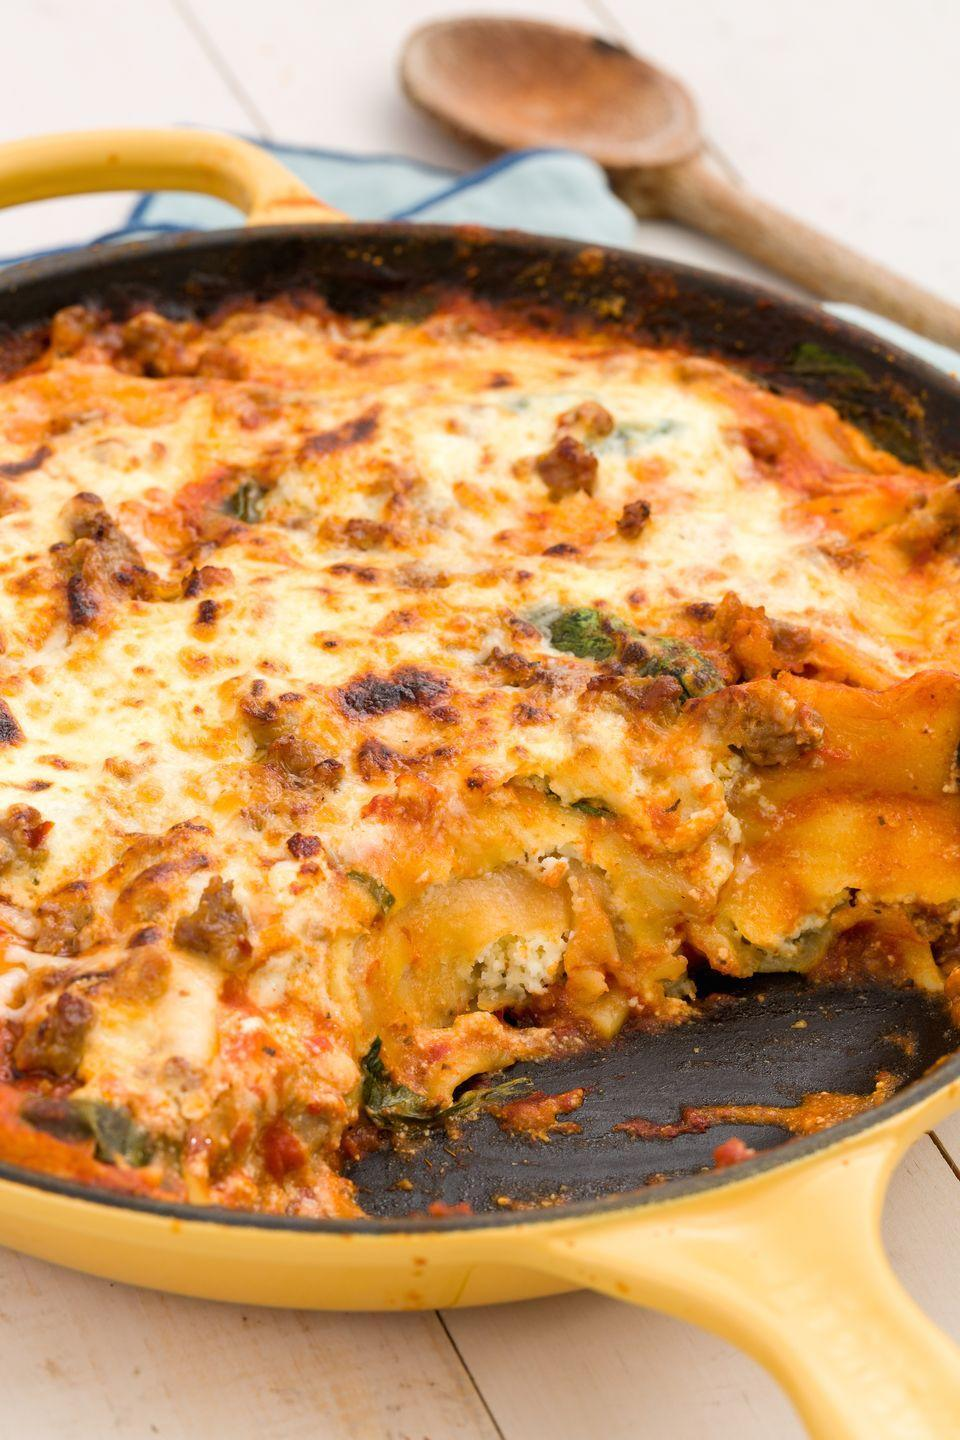 """<p>This cheater's lasagna is genius: You start with simmering marinara in a skillet, add ravioli and cooked sausage, and top it off with cheese for a melty one-pot meal.</p><p>Get the recipe from <a href=""""https://www.delish.com/cooking/recipe-ideas/recipes/a45604/skillet-ravioli-lasagna-with-spicy-italian-sausage-recipe/"""" rel=""""nofollow noopener"""" target=""""_blank"""" data-ylk=""""slk:Delish"""" class=""""link rapid-noclick-resp"""">Delish</a>.<br></p>"""